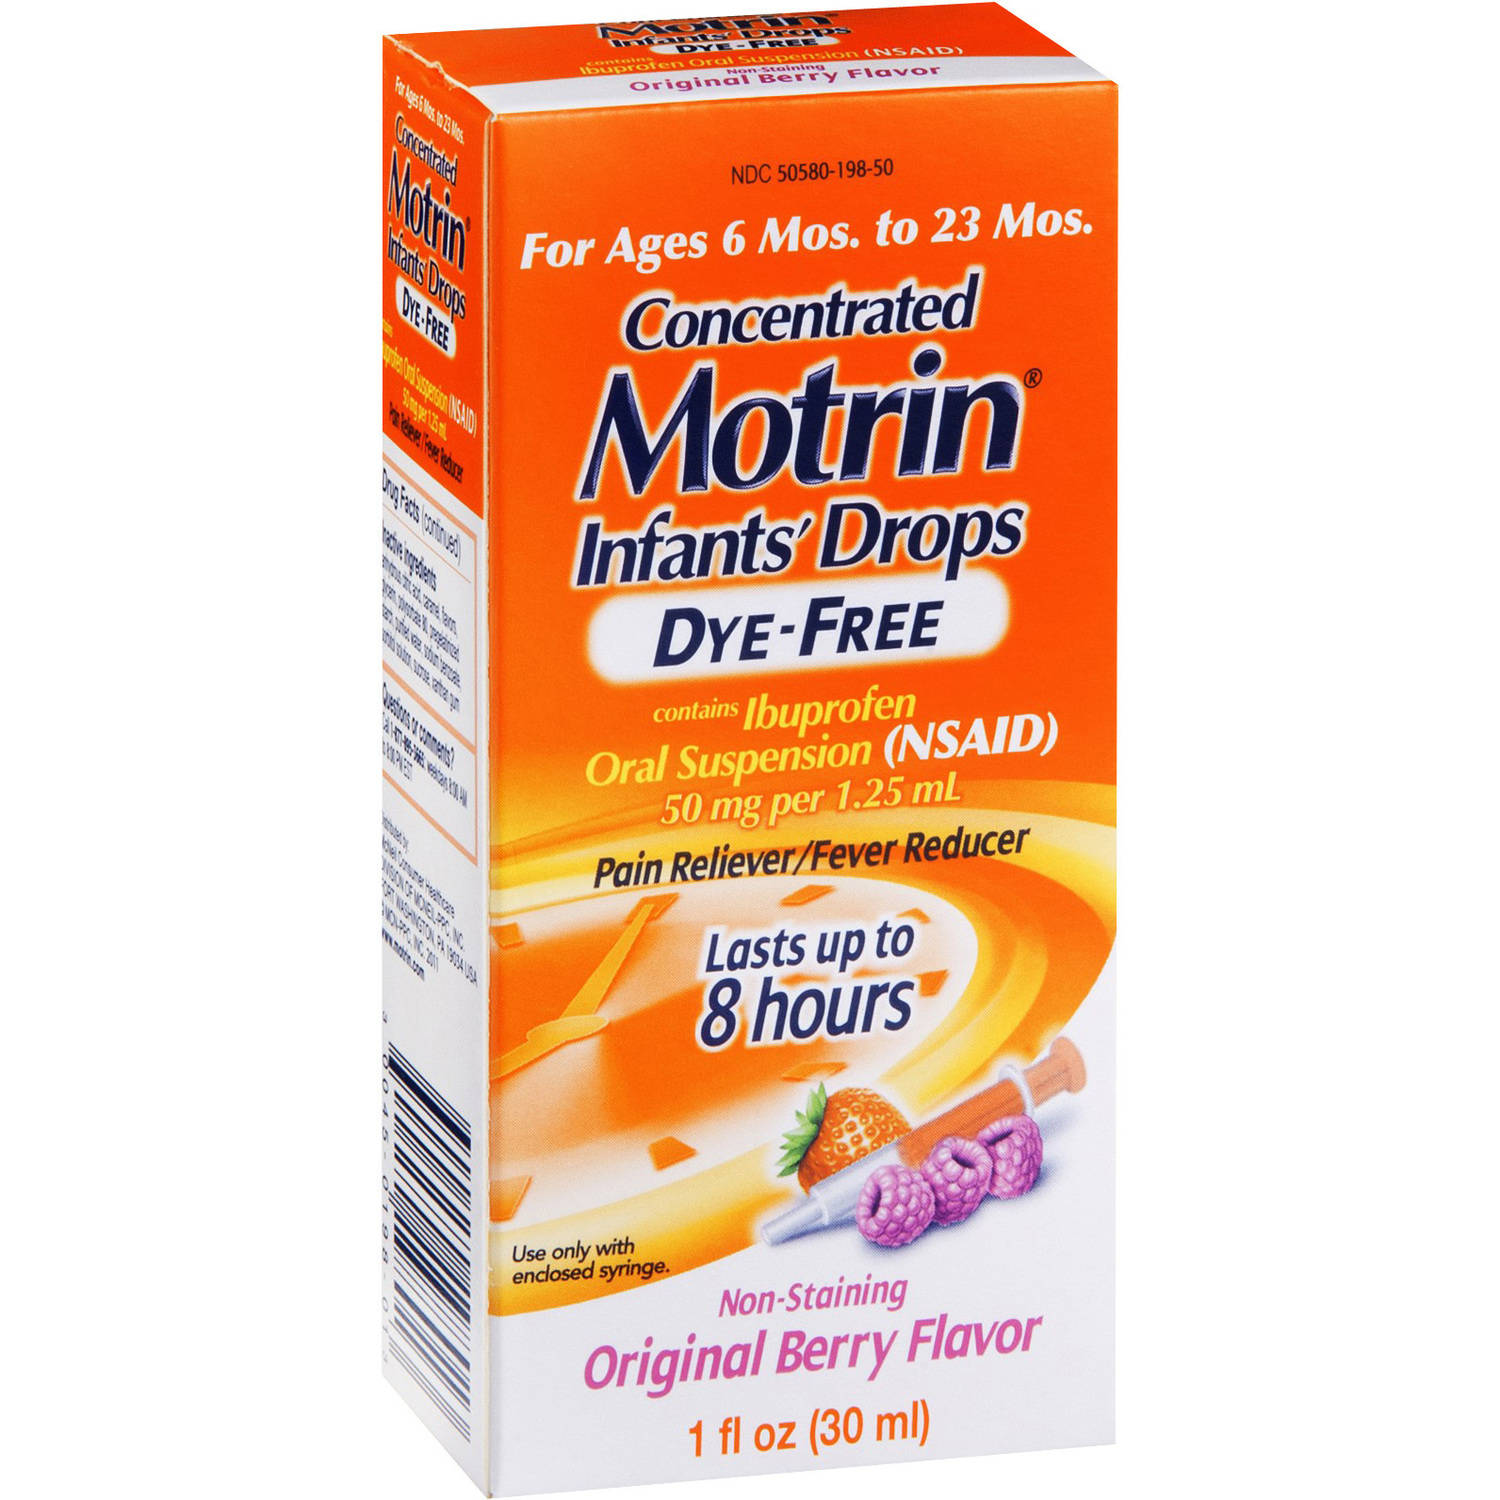 Motrin Infant Pain Reliever/Fever Reducer Infants' Drops Concentrated Dye-Free Berry Flavor, 1 OZ (Pack of 6)